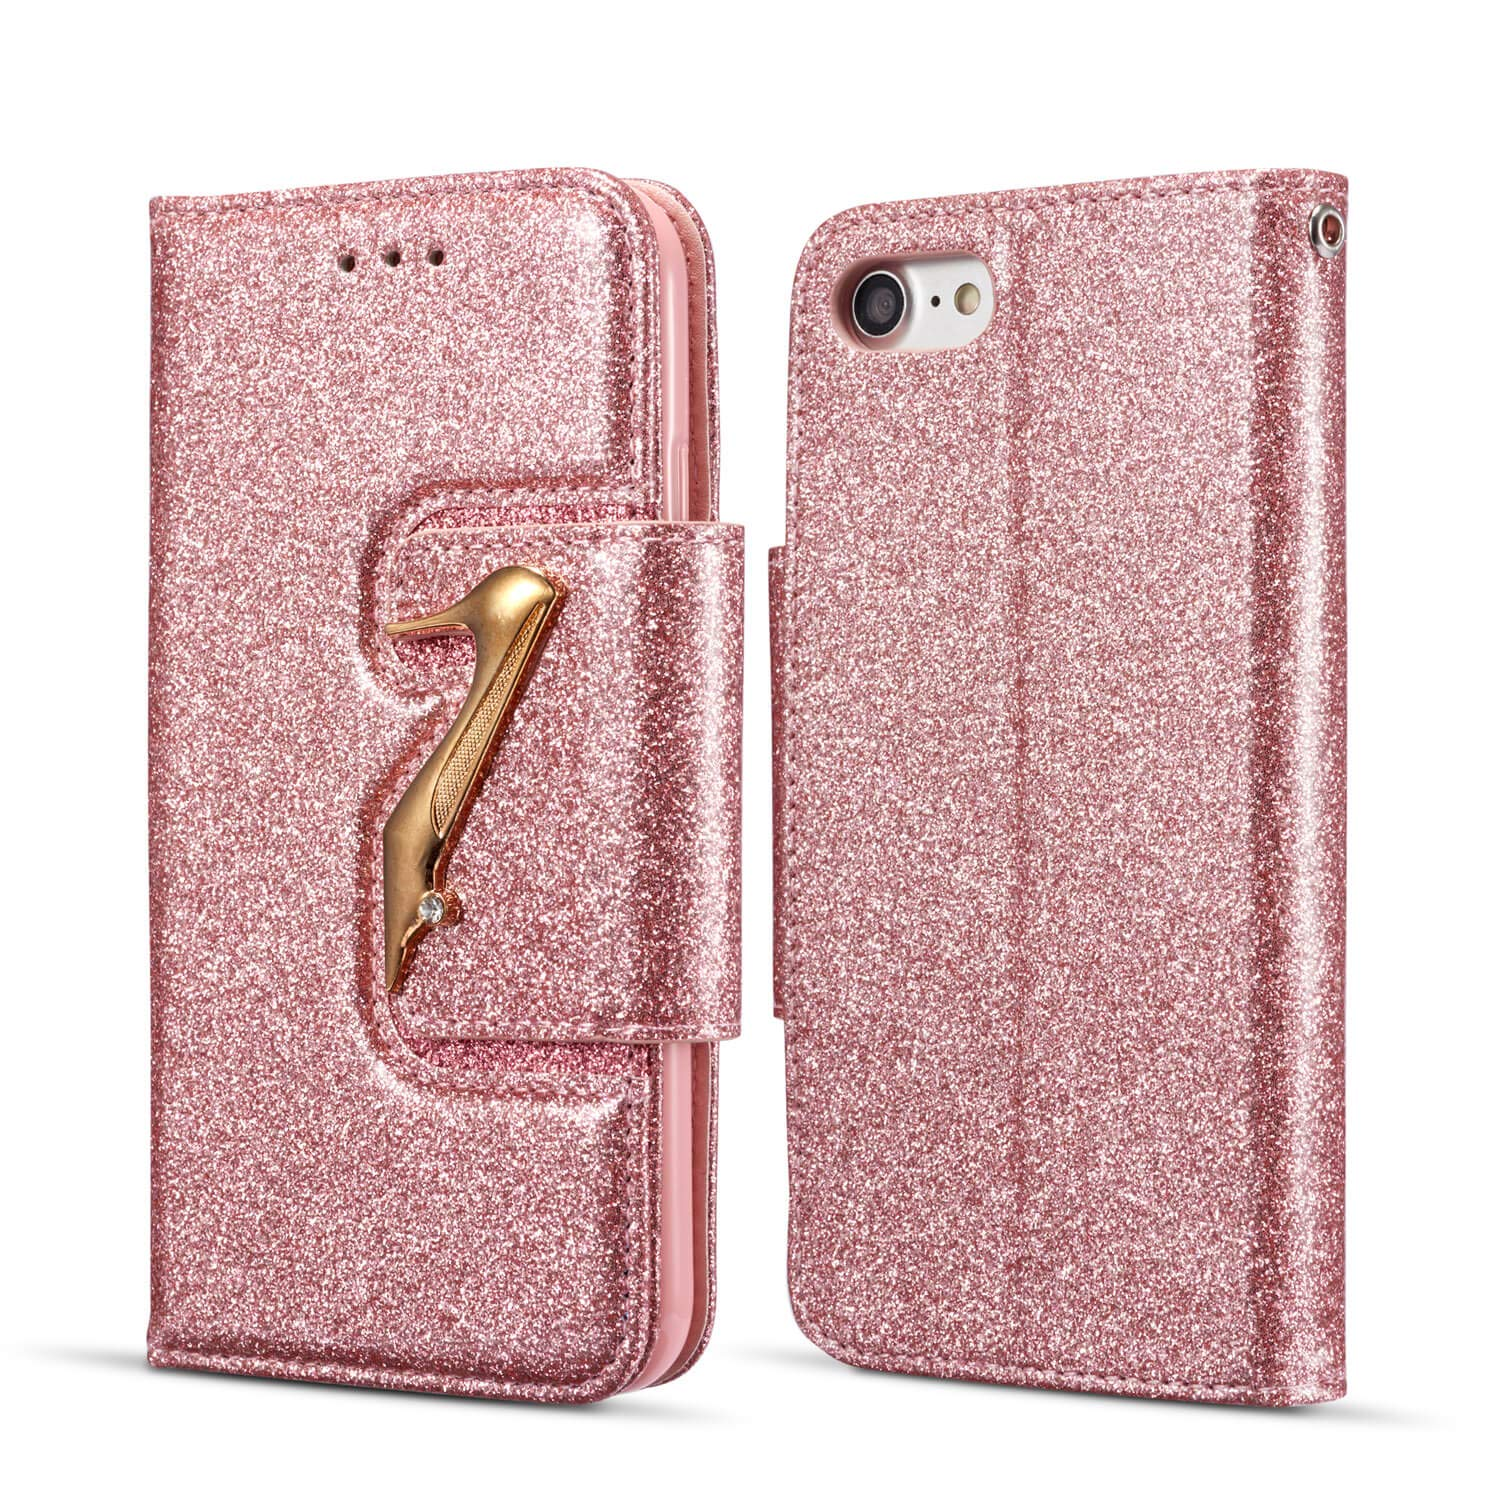 DEFBSC iPhone 6 Plus 6S Plus Wallet Case with Kickstand Card Holder,Bling Glitter PU Leather Folio Flip Case for iPhone 6 Plus/iPhone 6S Plus 5.5 inch,Rose Gold